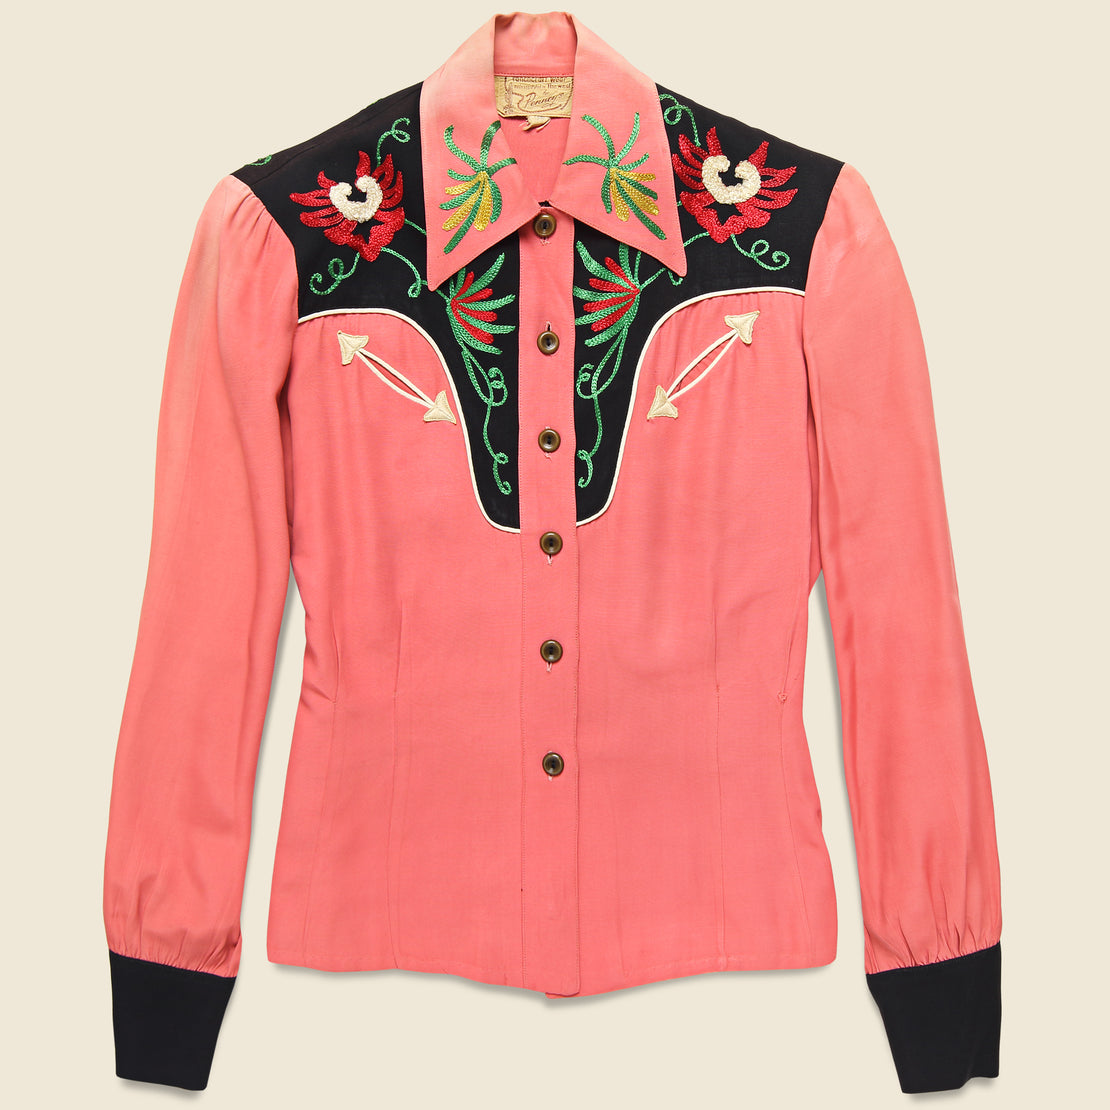 Vintage Penneys Ranchcraft Western Embroidered Blouse - Coral Pink